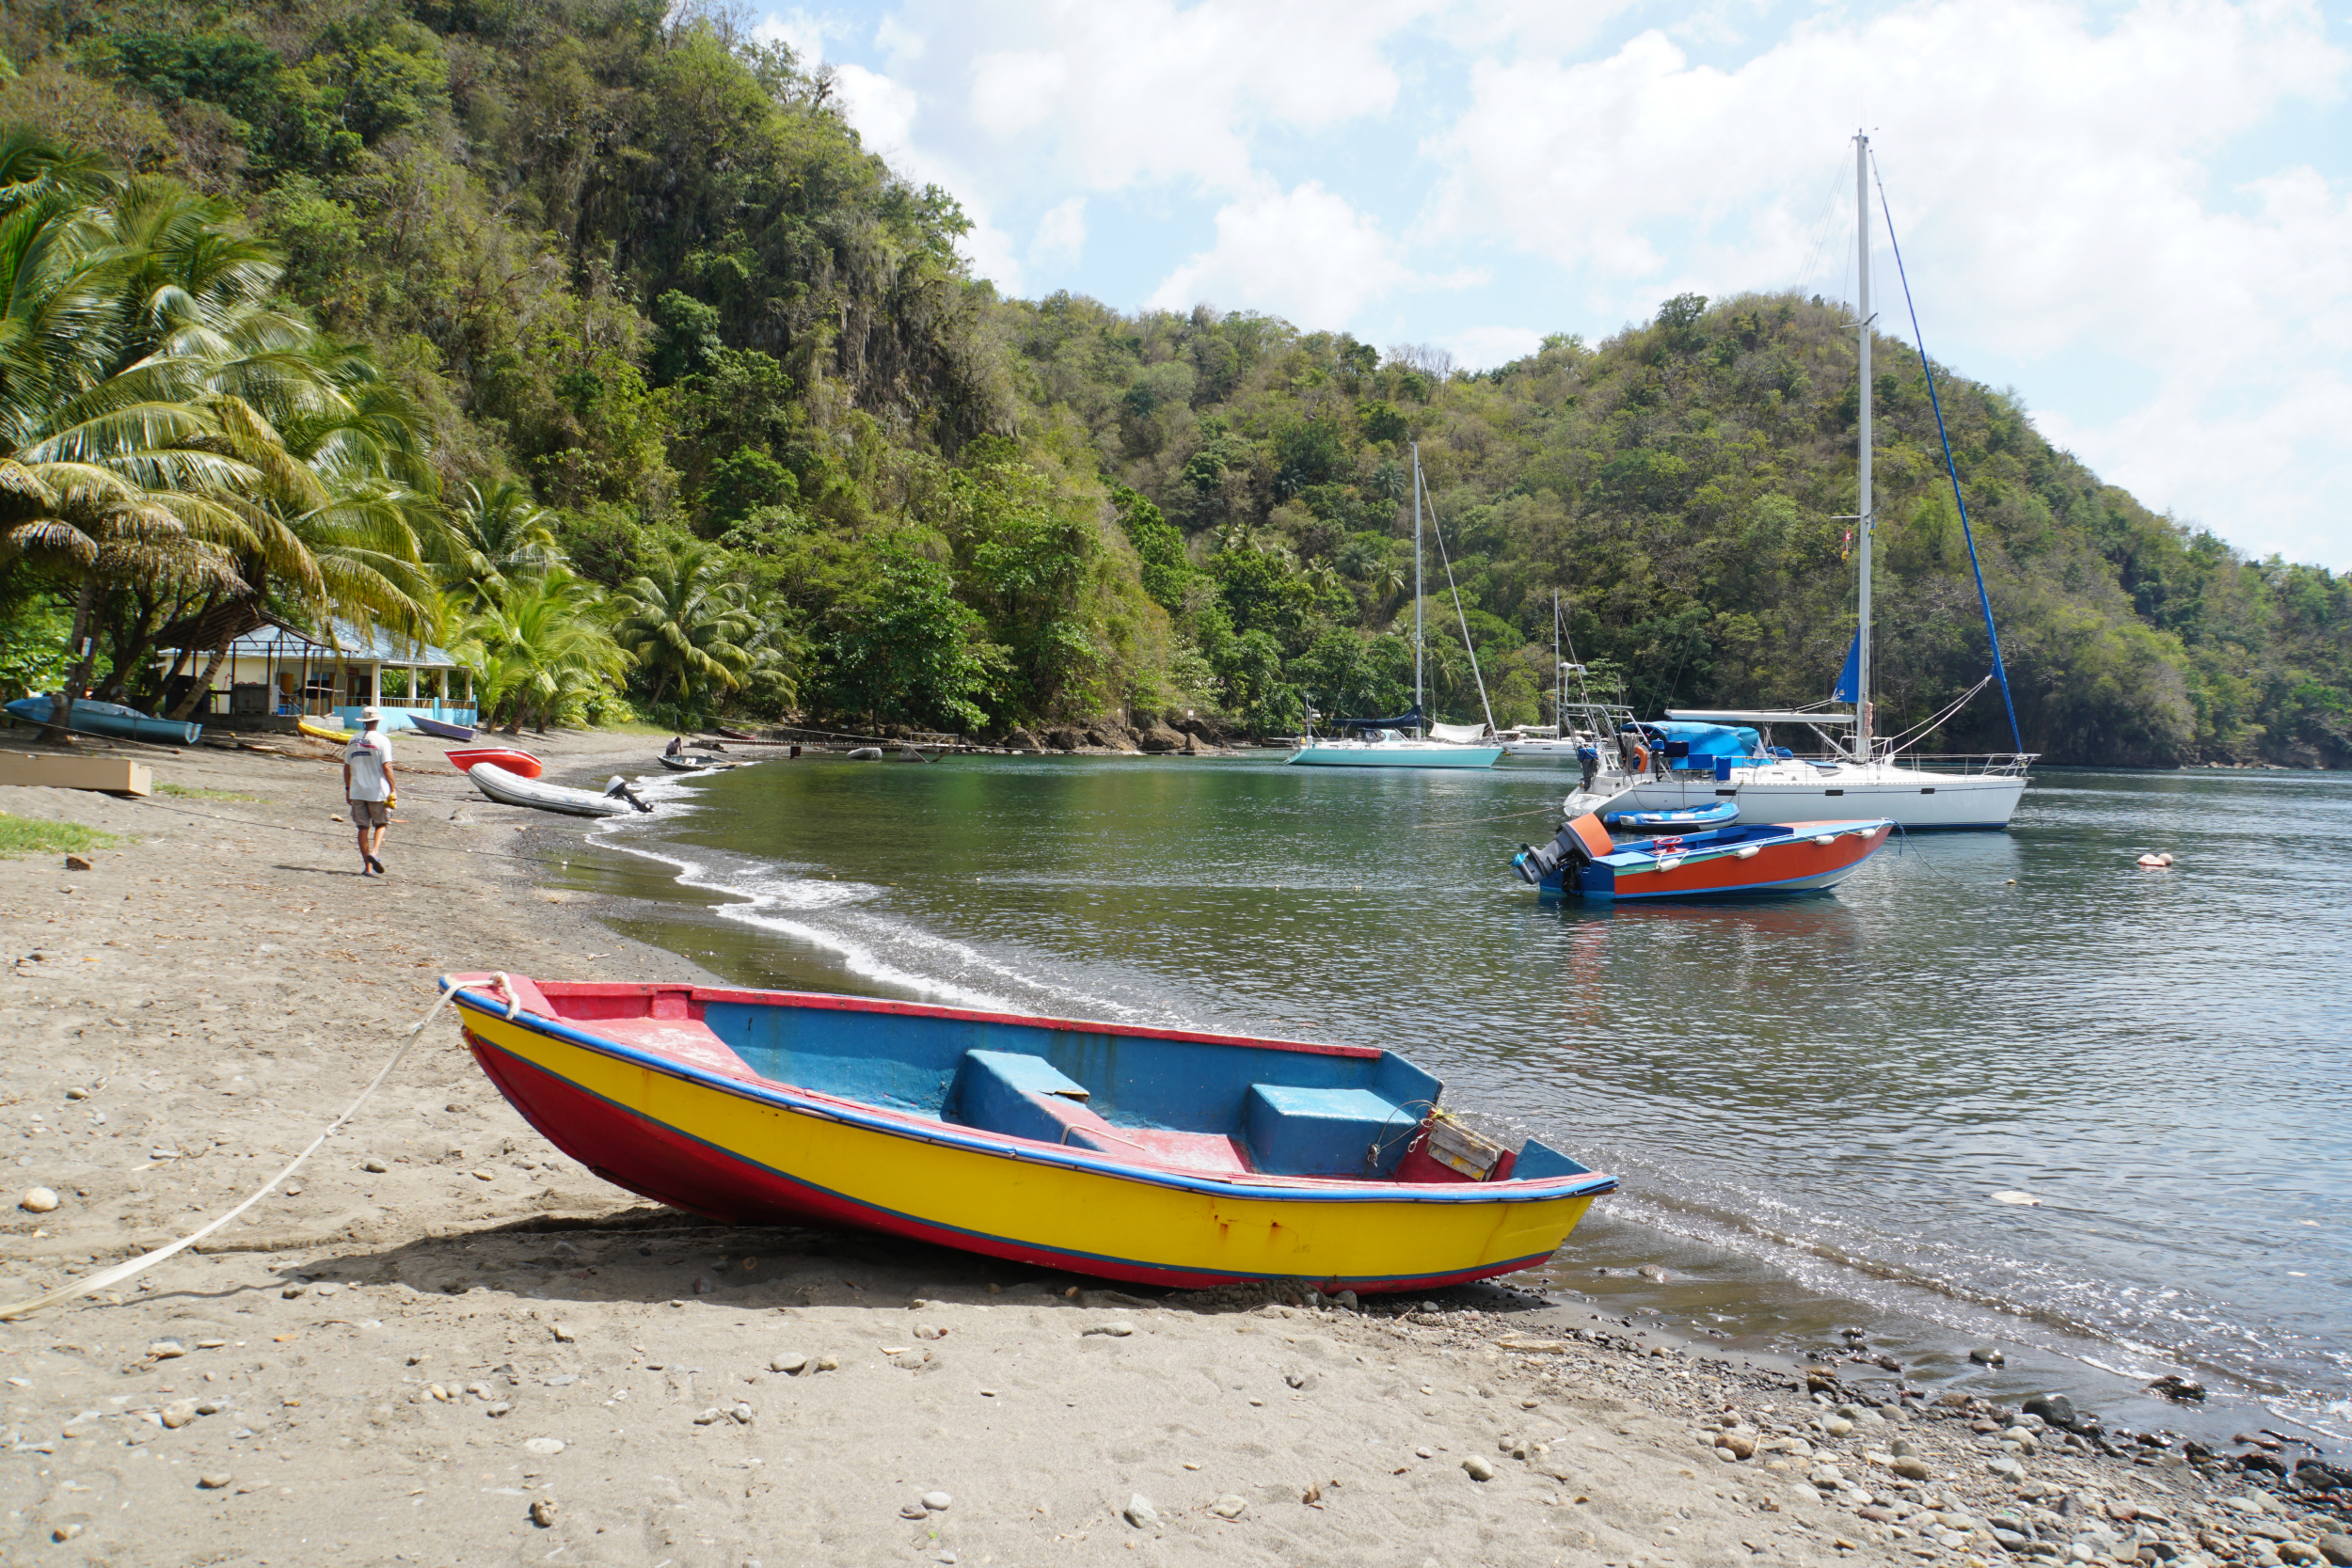 41. Boats in Cumberland Bay